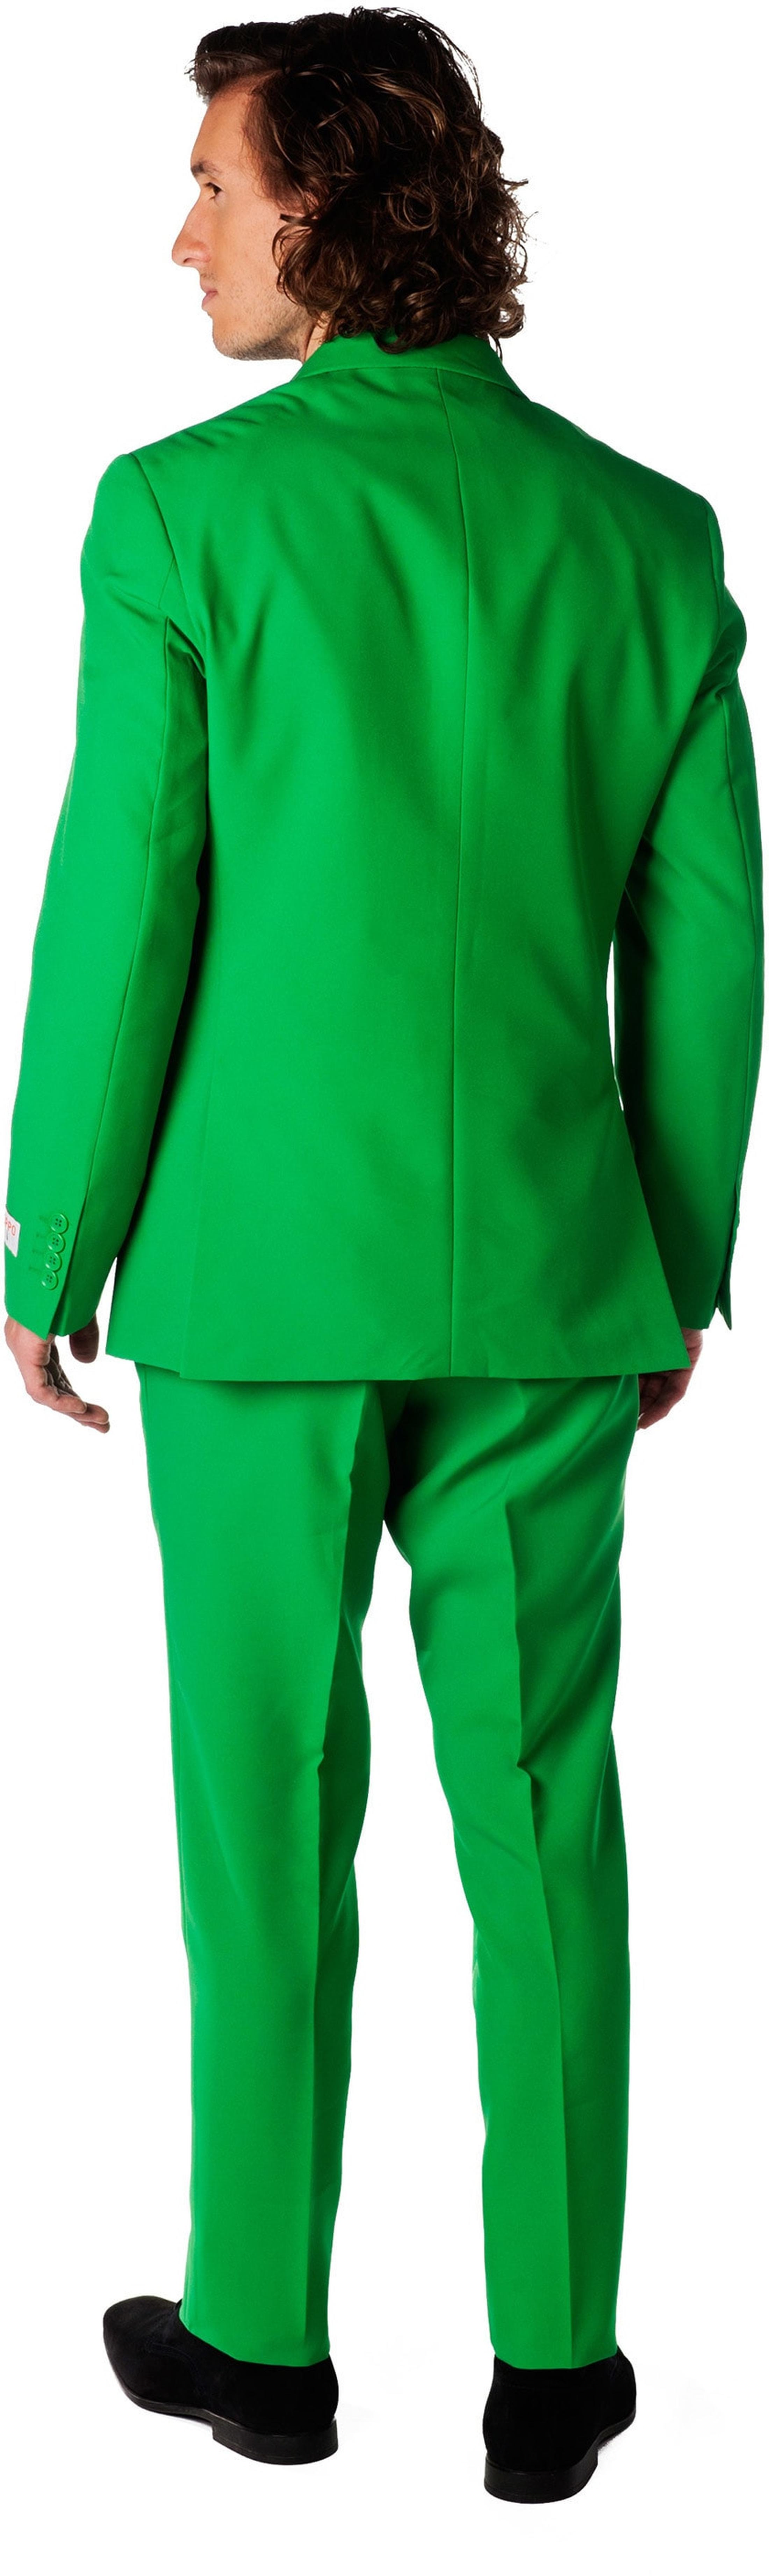 OppoSuits Evergeen Suit foto 1